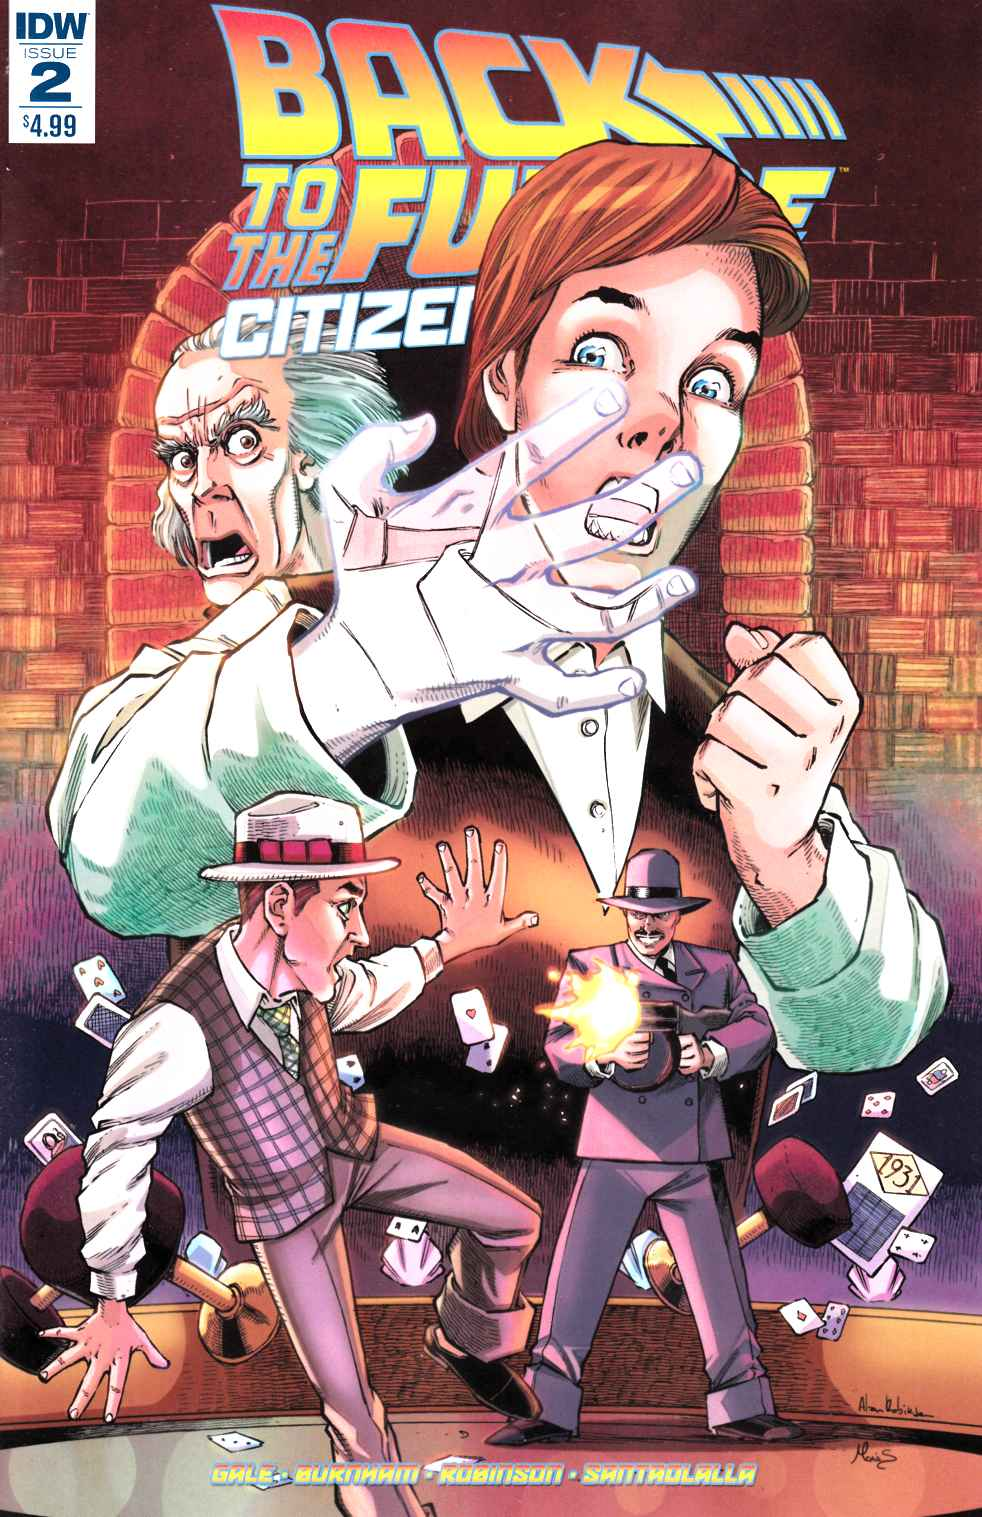 Back to the Future Citizen Brown #2 [IDW Comic]